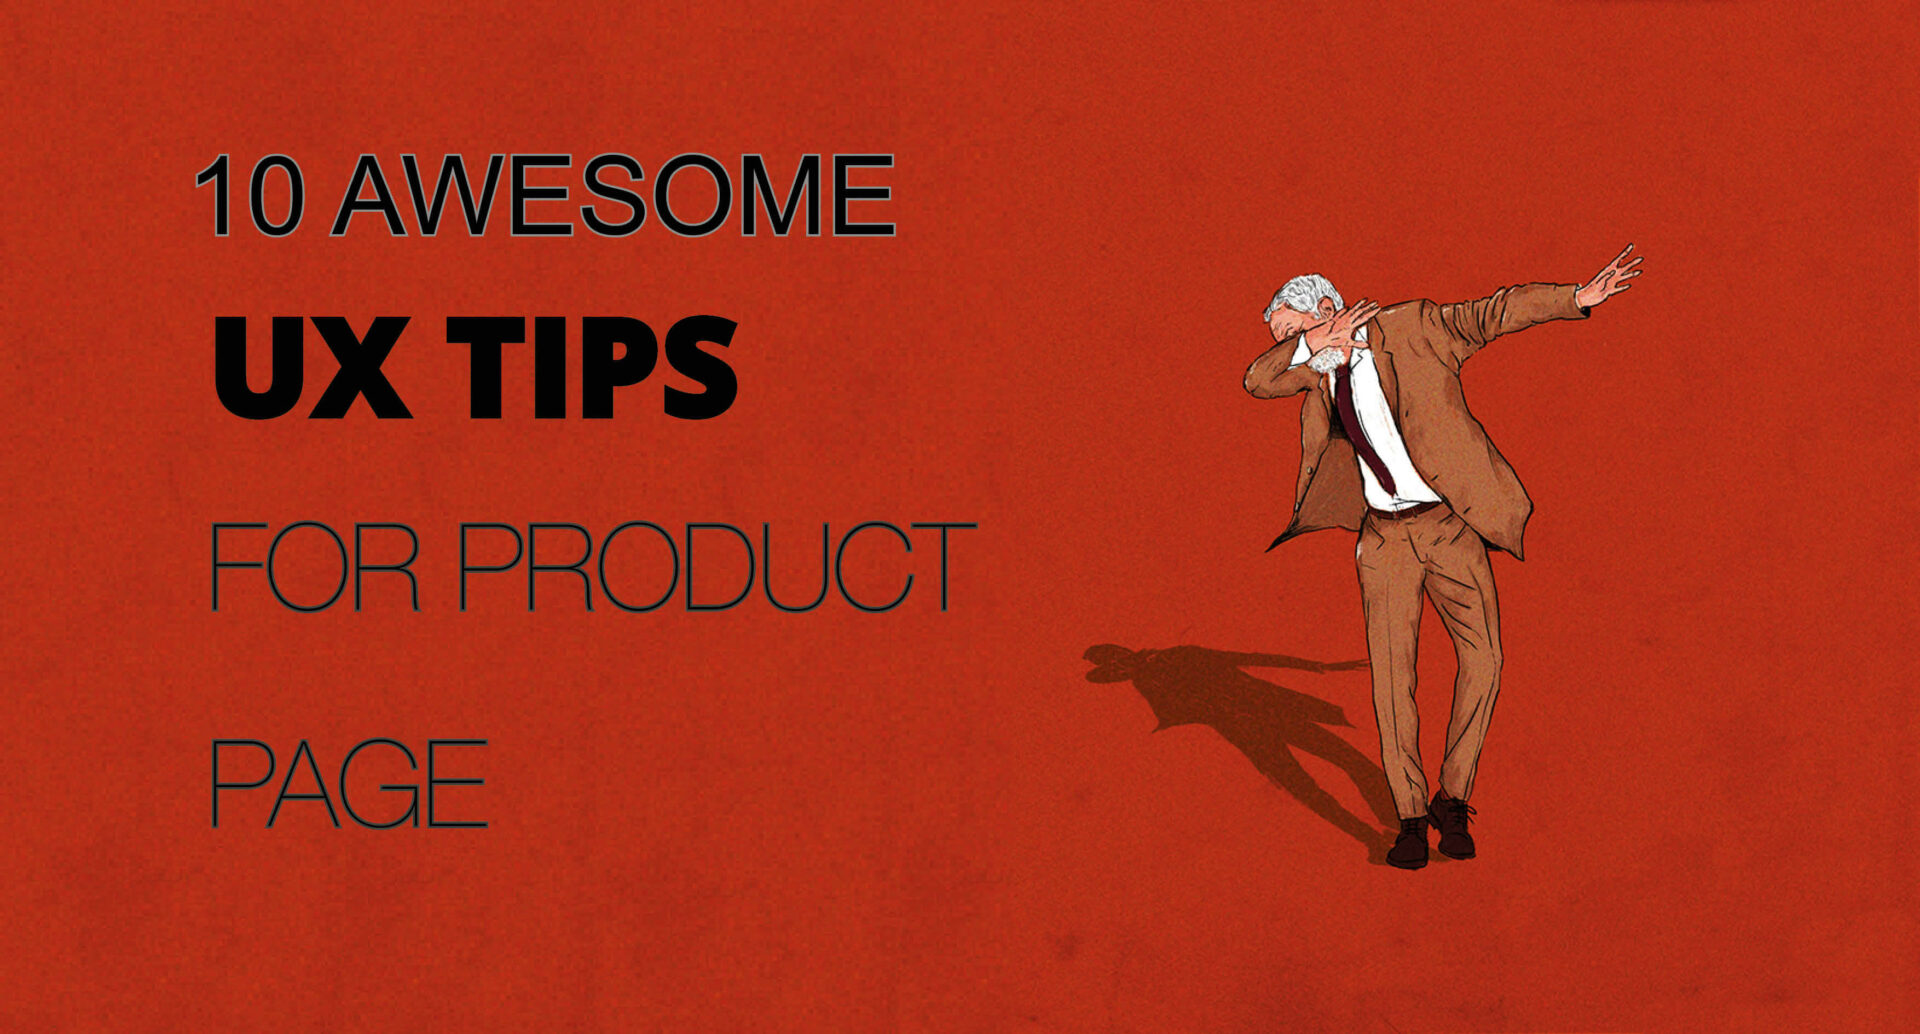 10 Awesome Ux Tips and Tricks for Product Pages